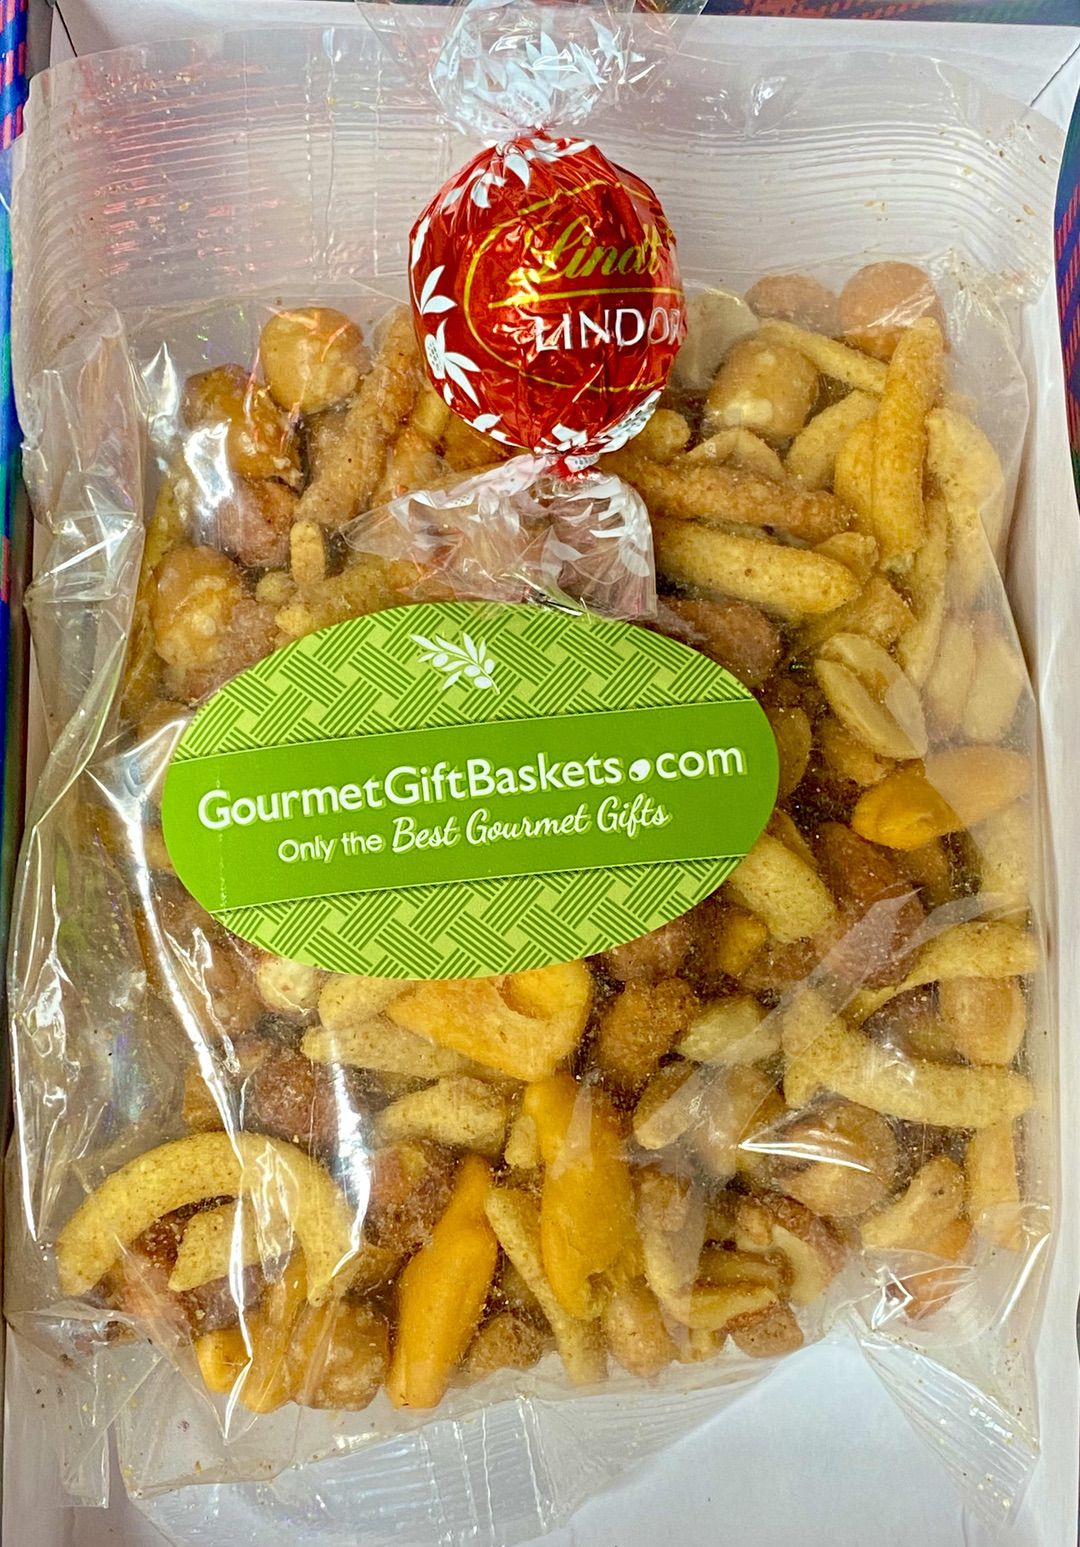 Gourmet Gift Baskets Christmas Delivery Gift Set